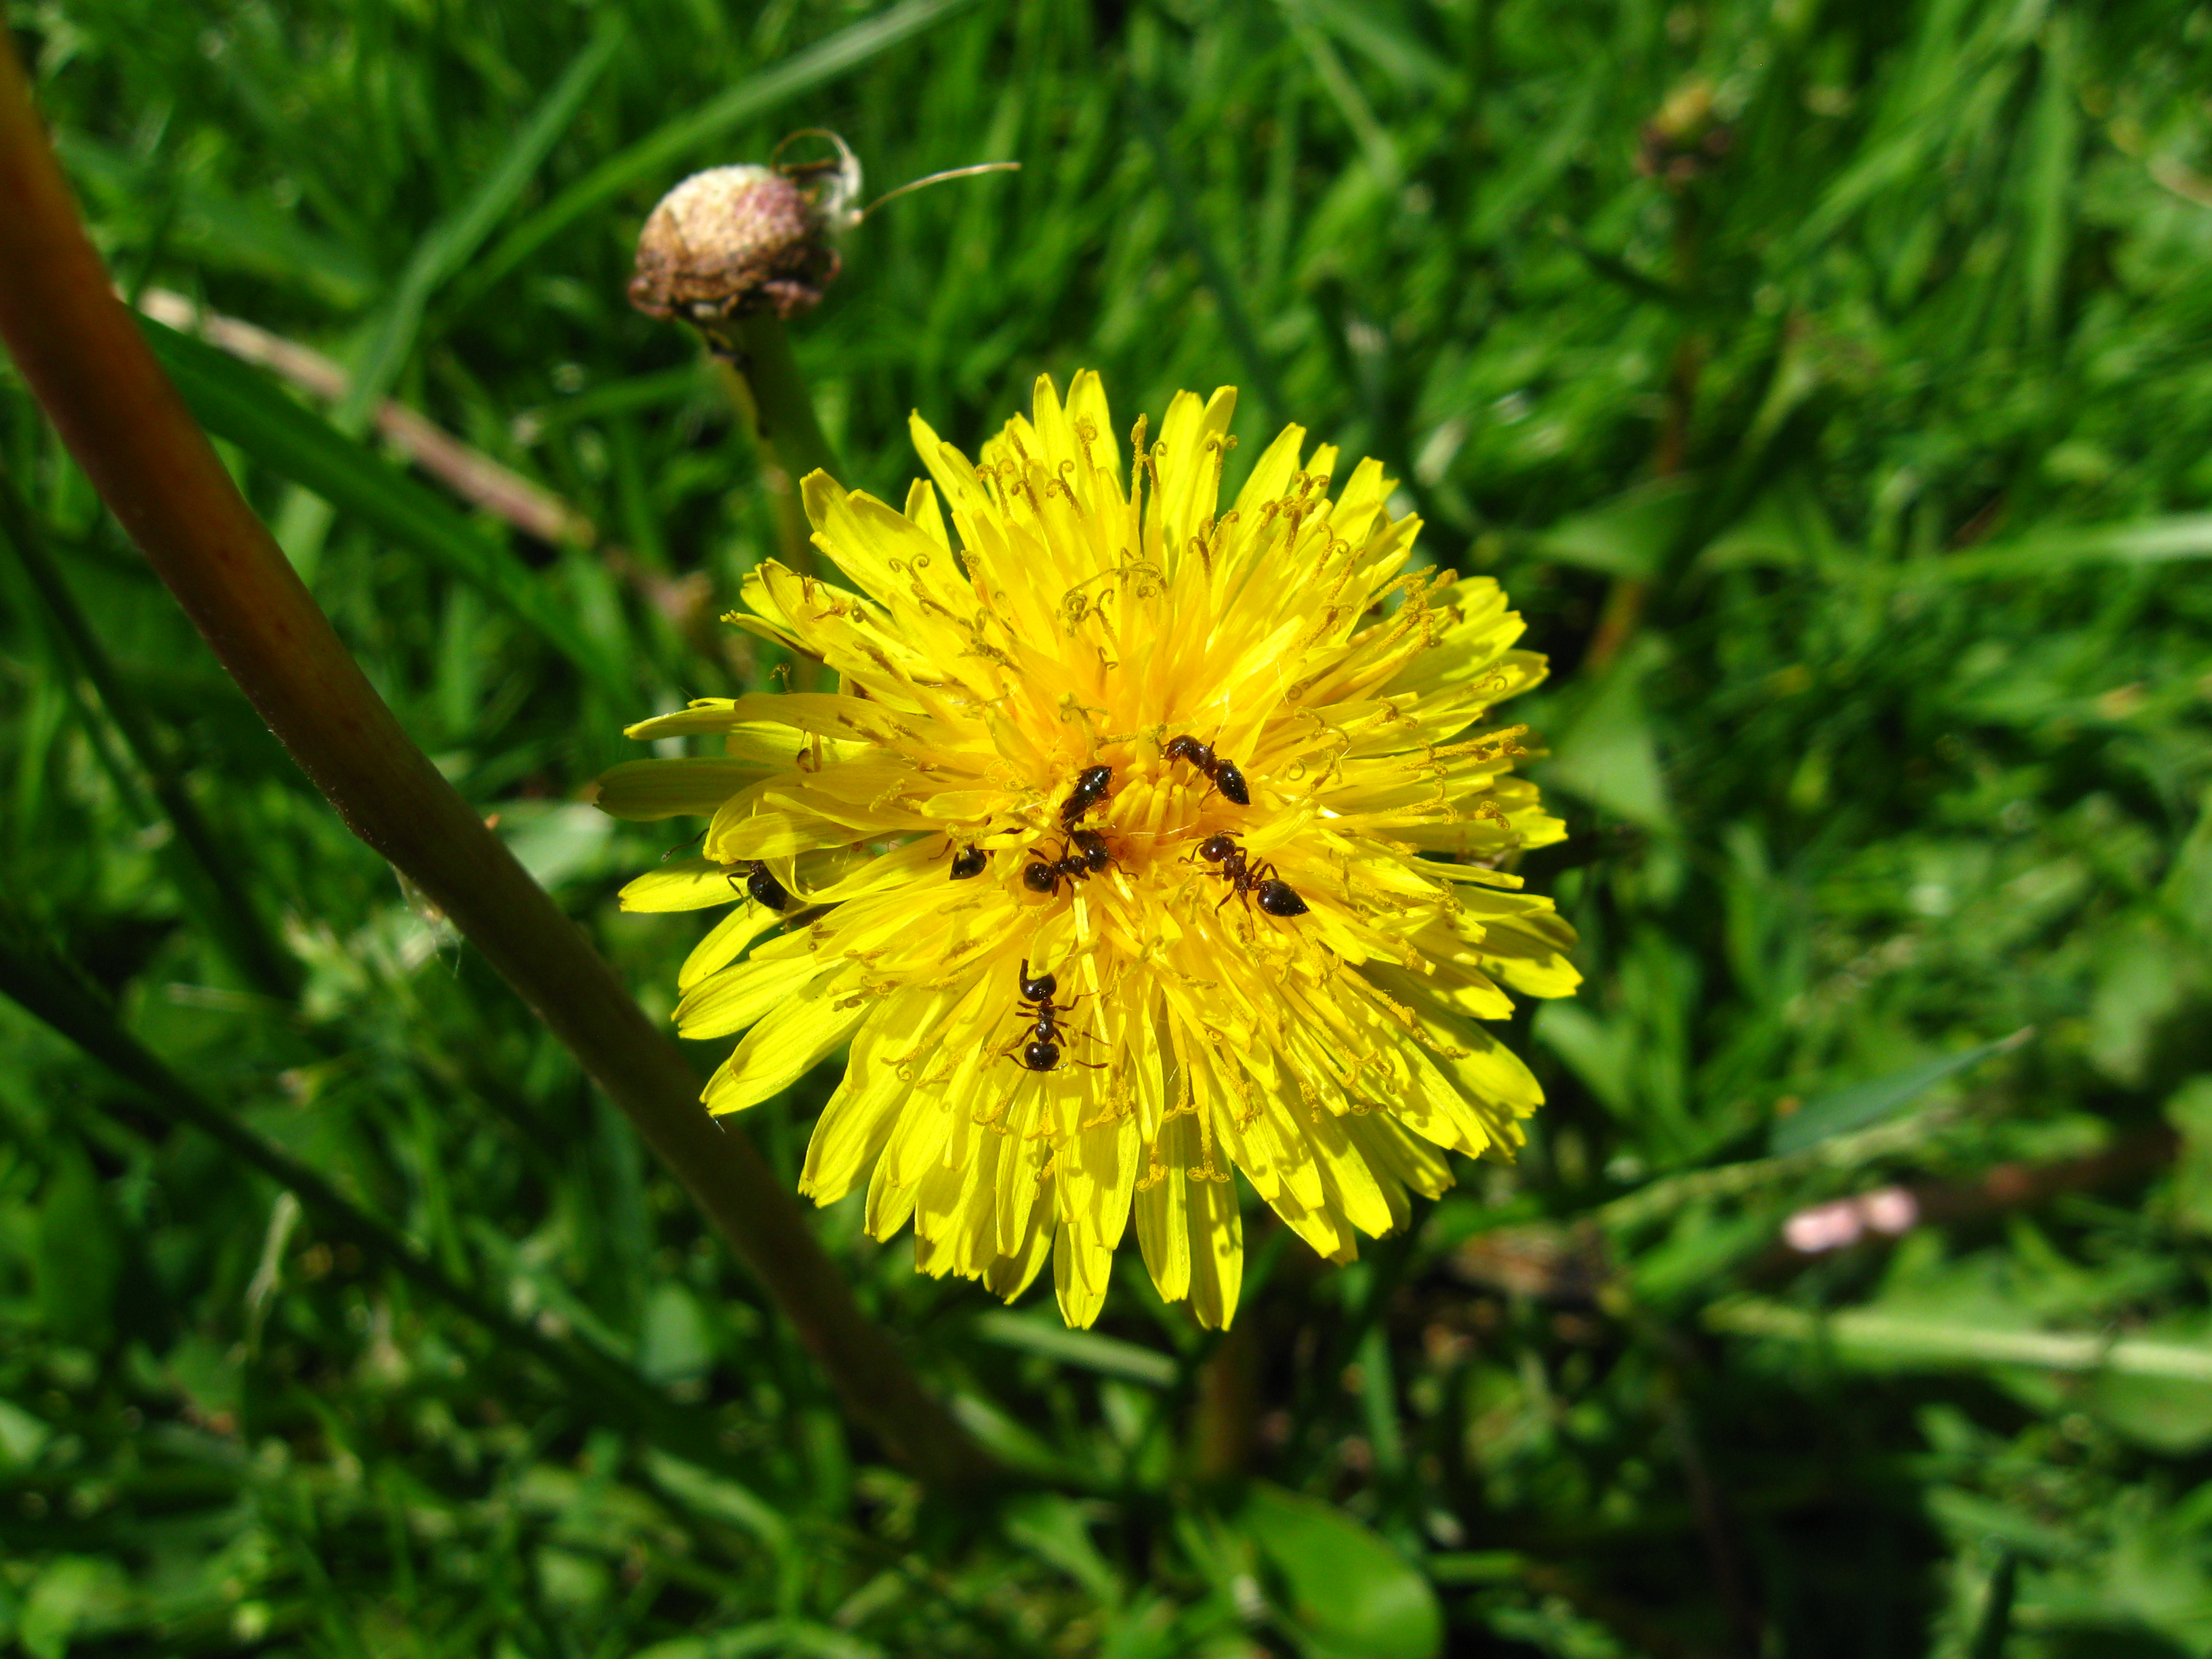 Ants may obtain nectar from flowers such as the dandelion but are only rarely known to pollinate flowers.